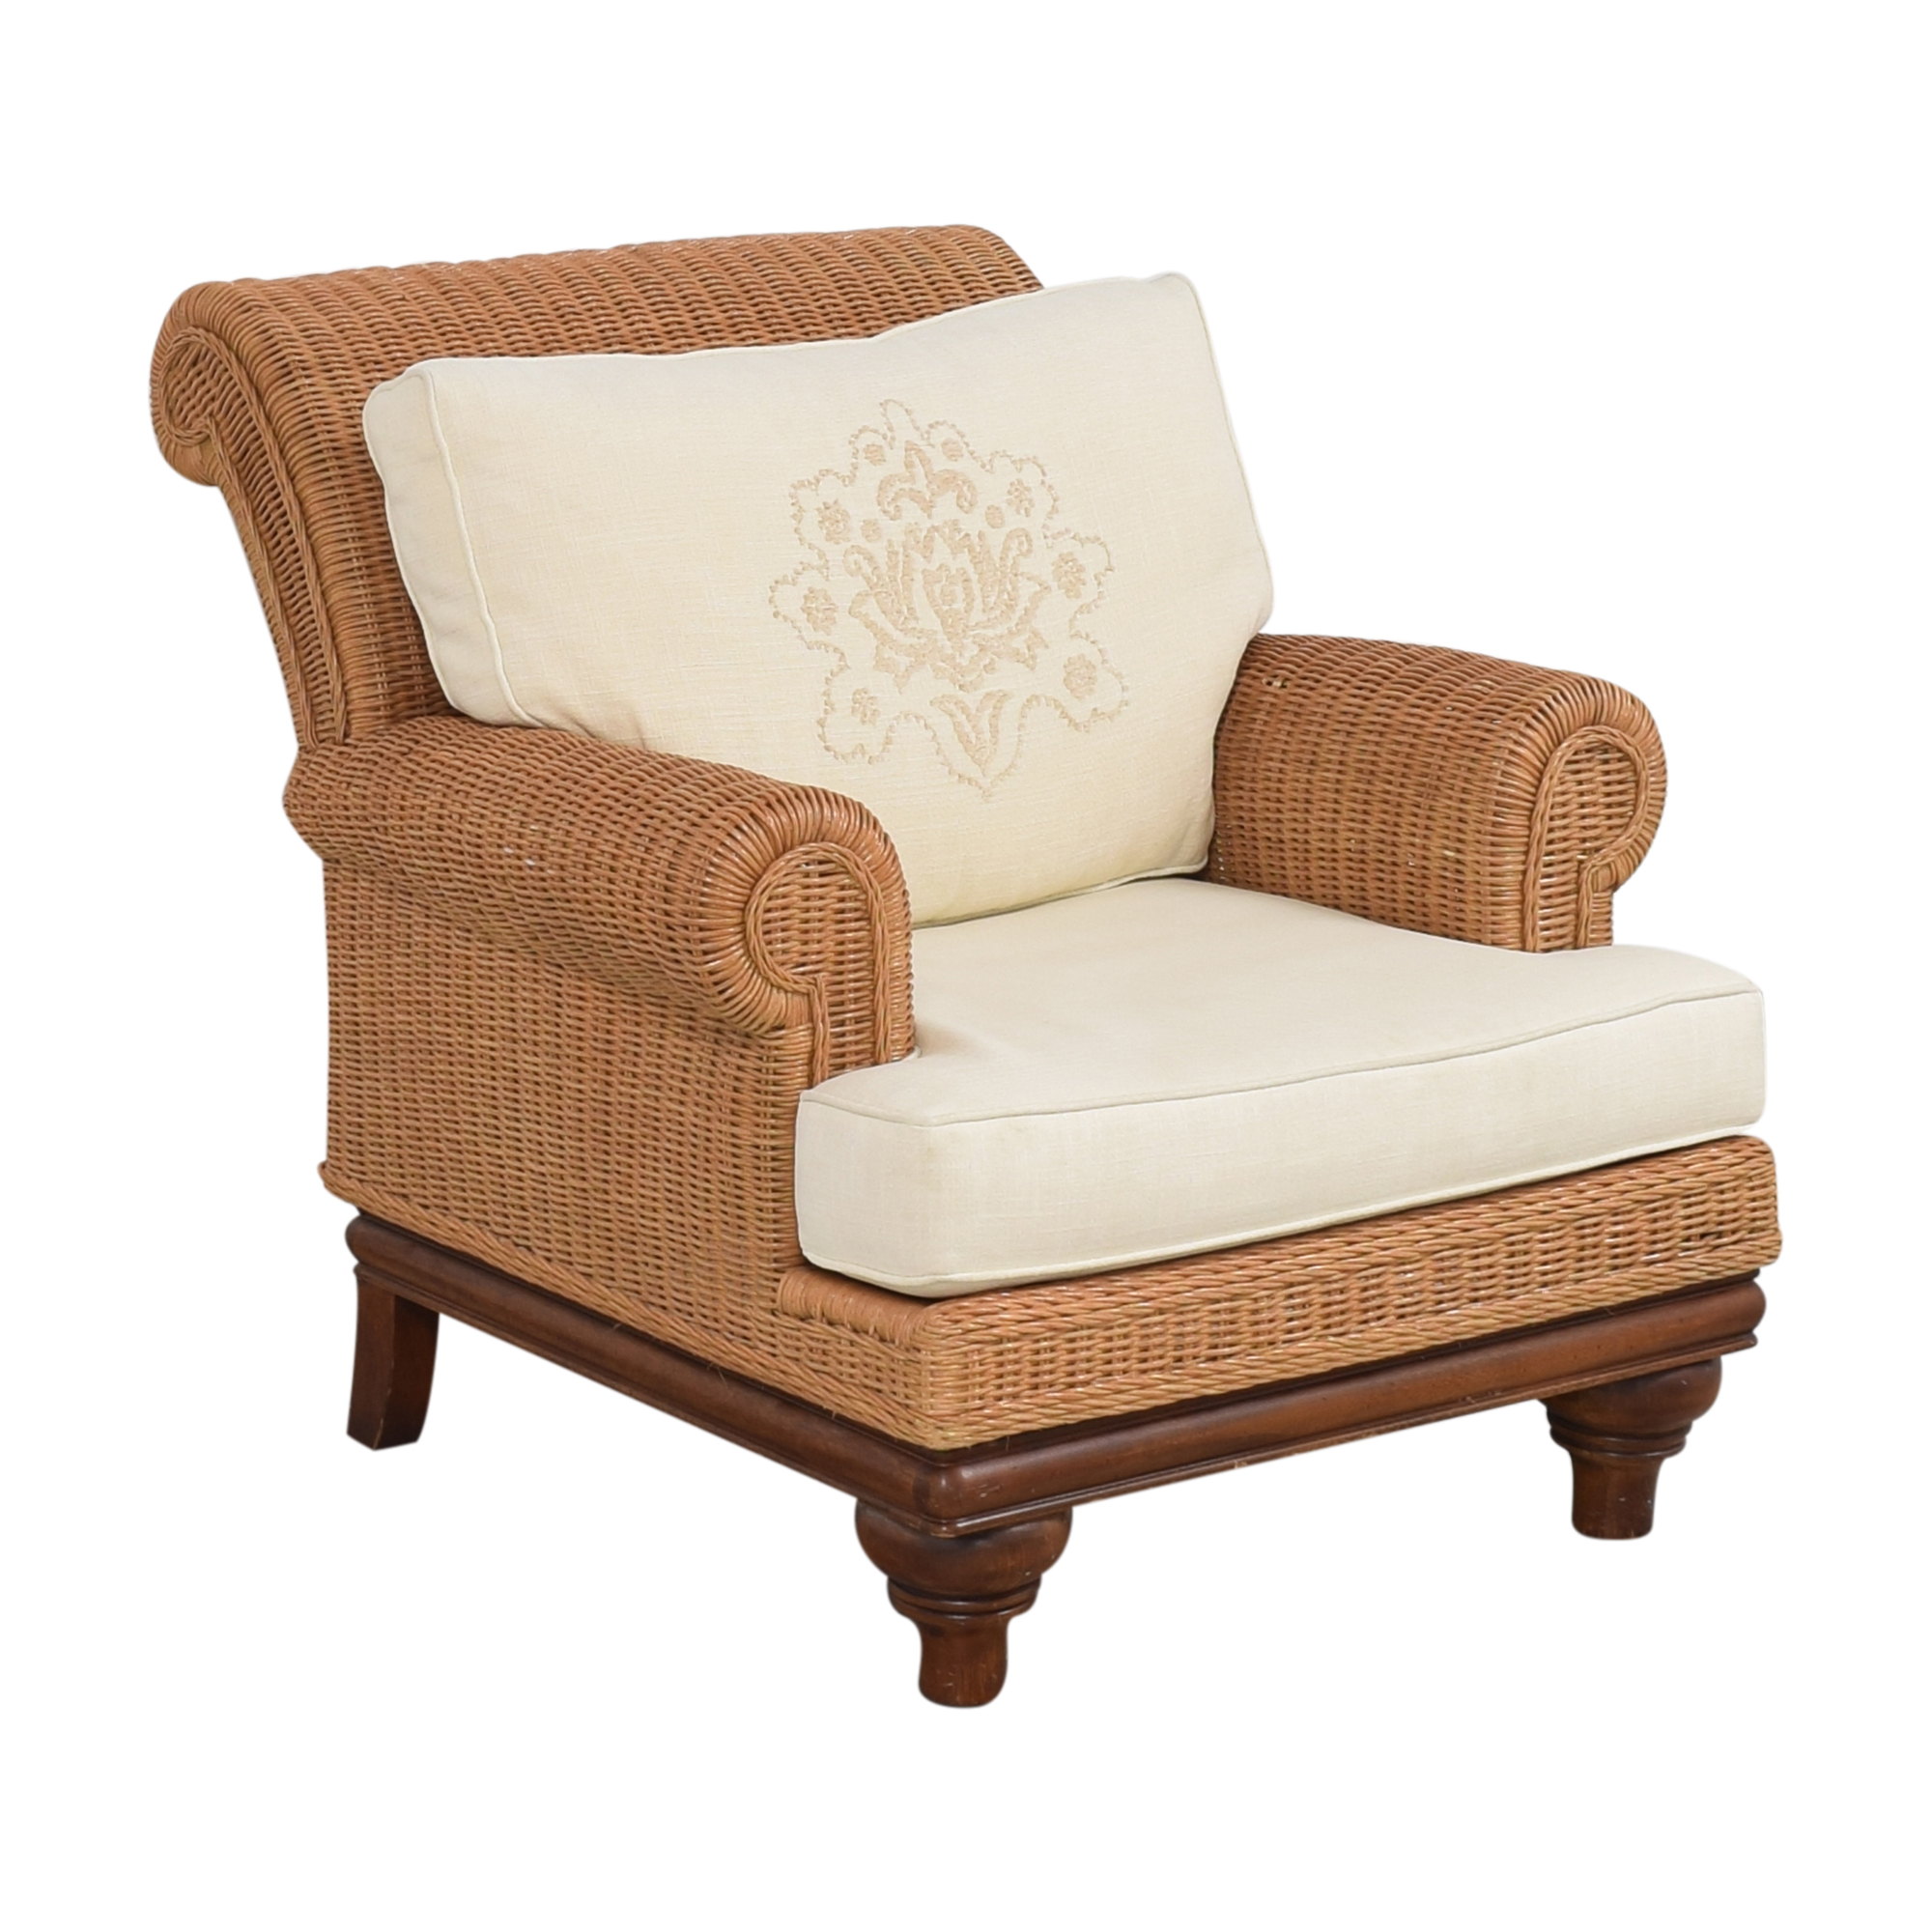 Henry Link Henry Link Roll Arm Lounge Chair pa